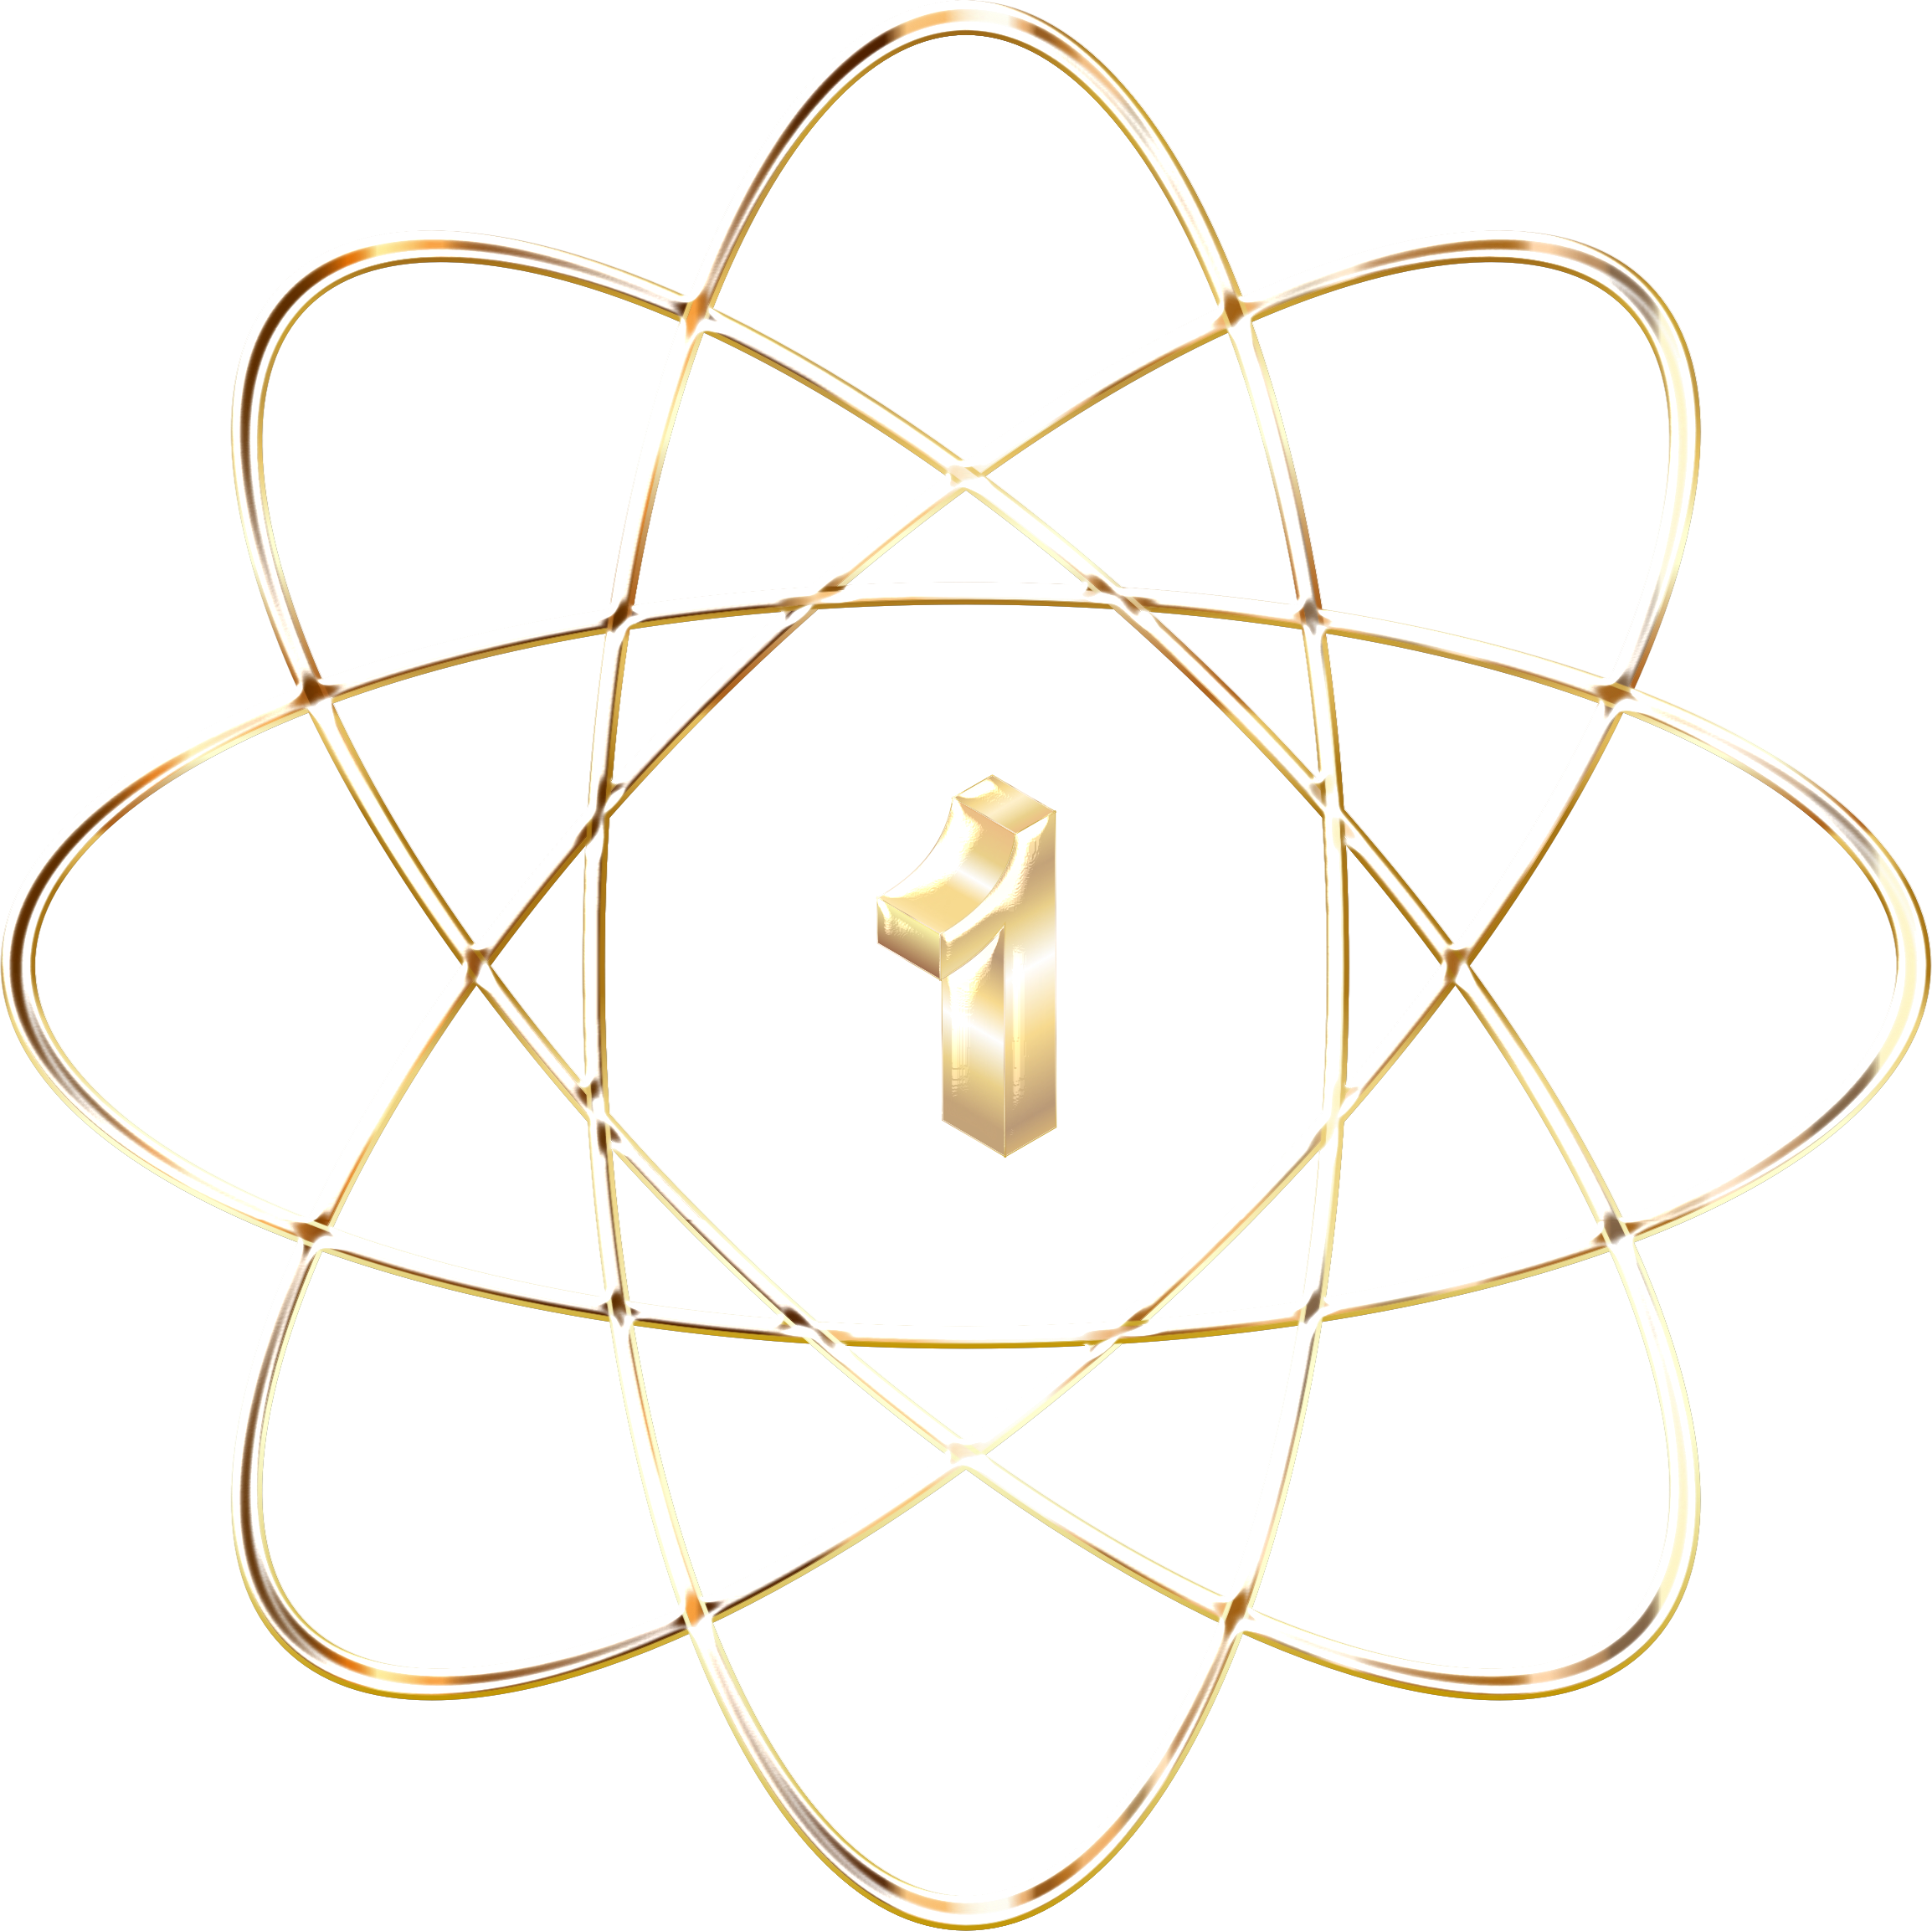 Atom clipart clear background. Gold enhanced no big